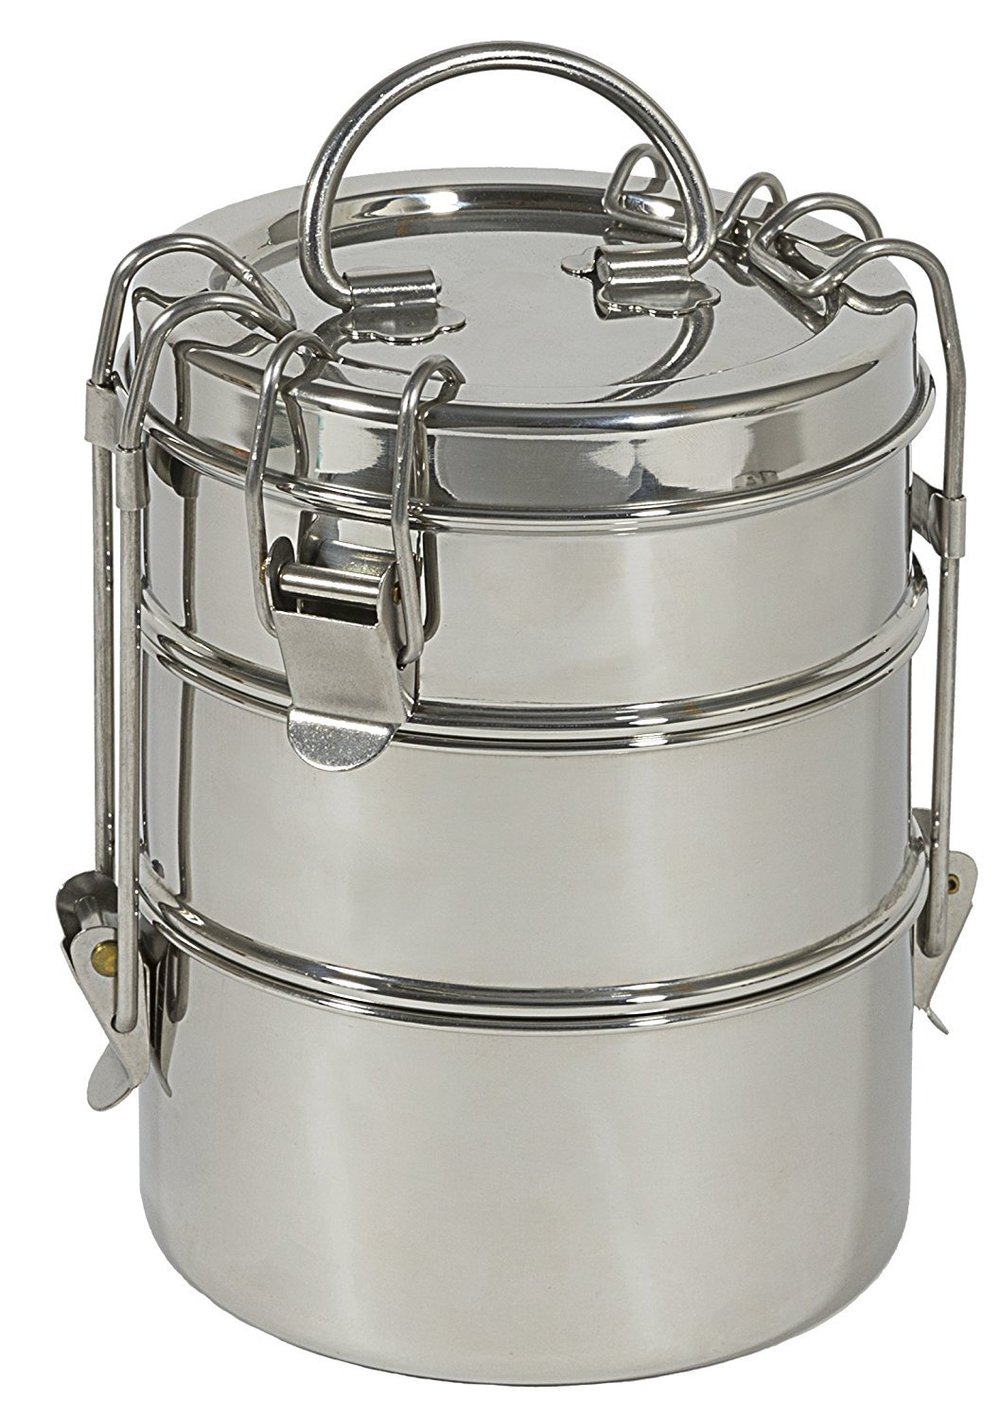 3 Tier Stainless Lunch Box - Adulting lunch box. Super sleek and zero waste. Can carry the top tier on its own or both together.